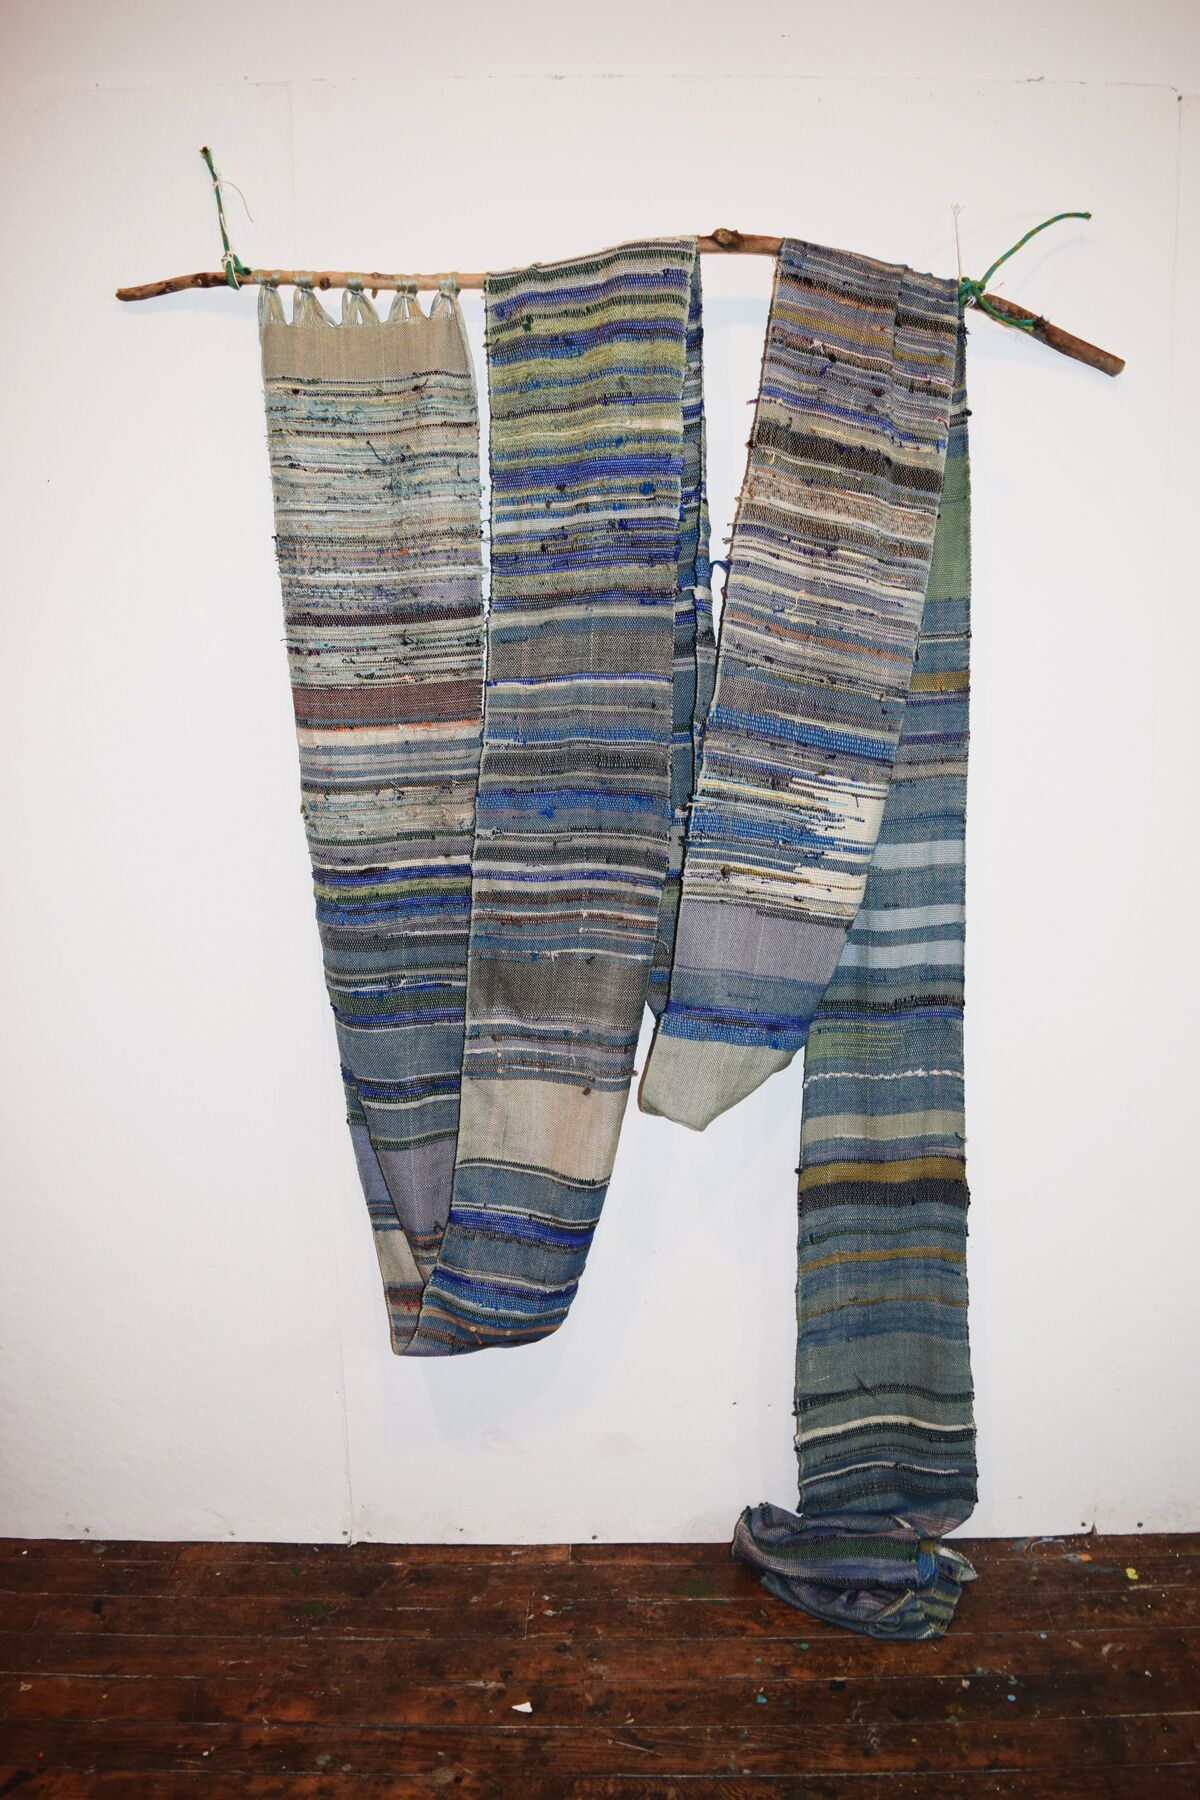 Stacey Piwinski,  What Once Was , handwoven fabric and found objects, 78 x 58 x 4, $3,500